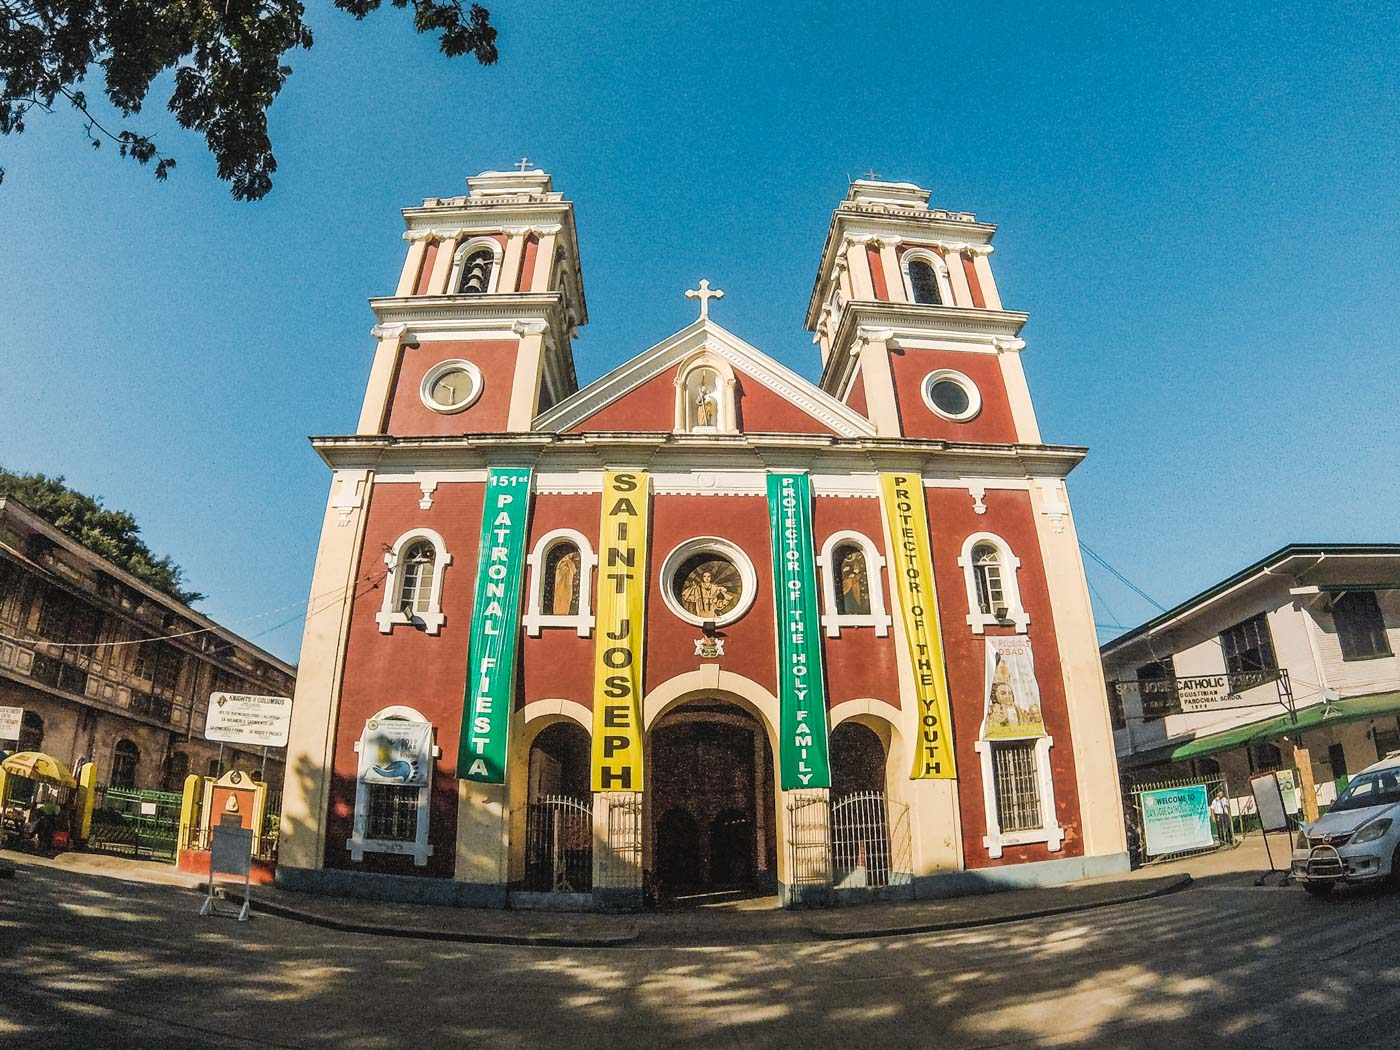 HISTORIC. The first church built in Iloilo City, San Jose Church houses the replica of the Sto Niño de Cebu. This is also where Dinagyang Festival is celebrated. Photo by Carl Don Berwin/Rappler